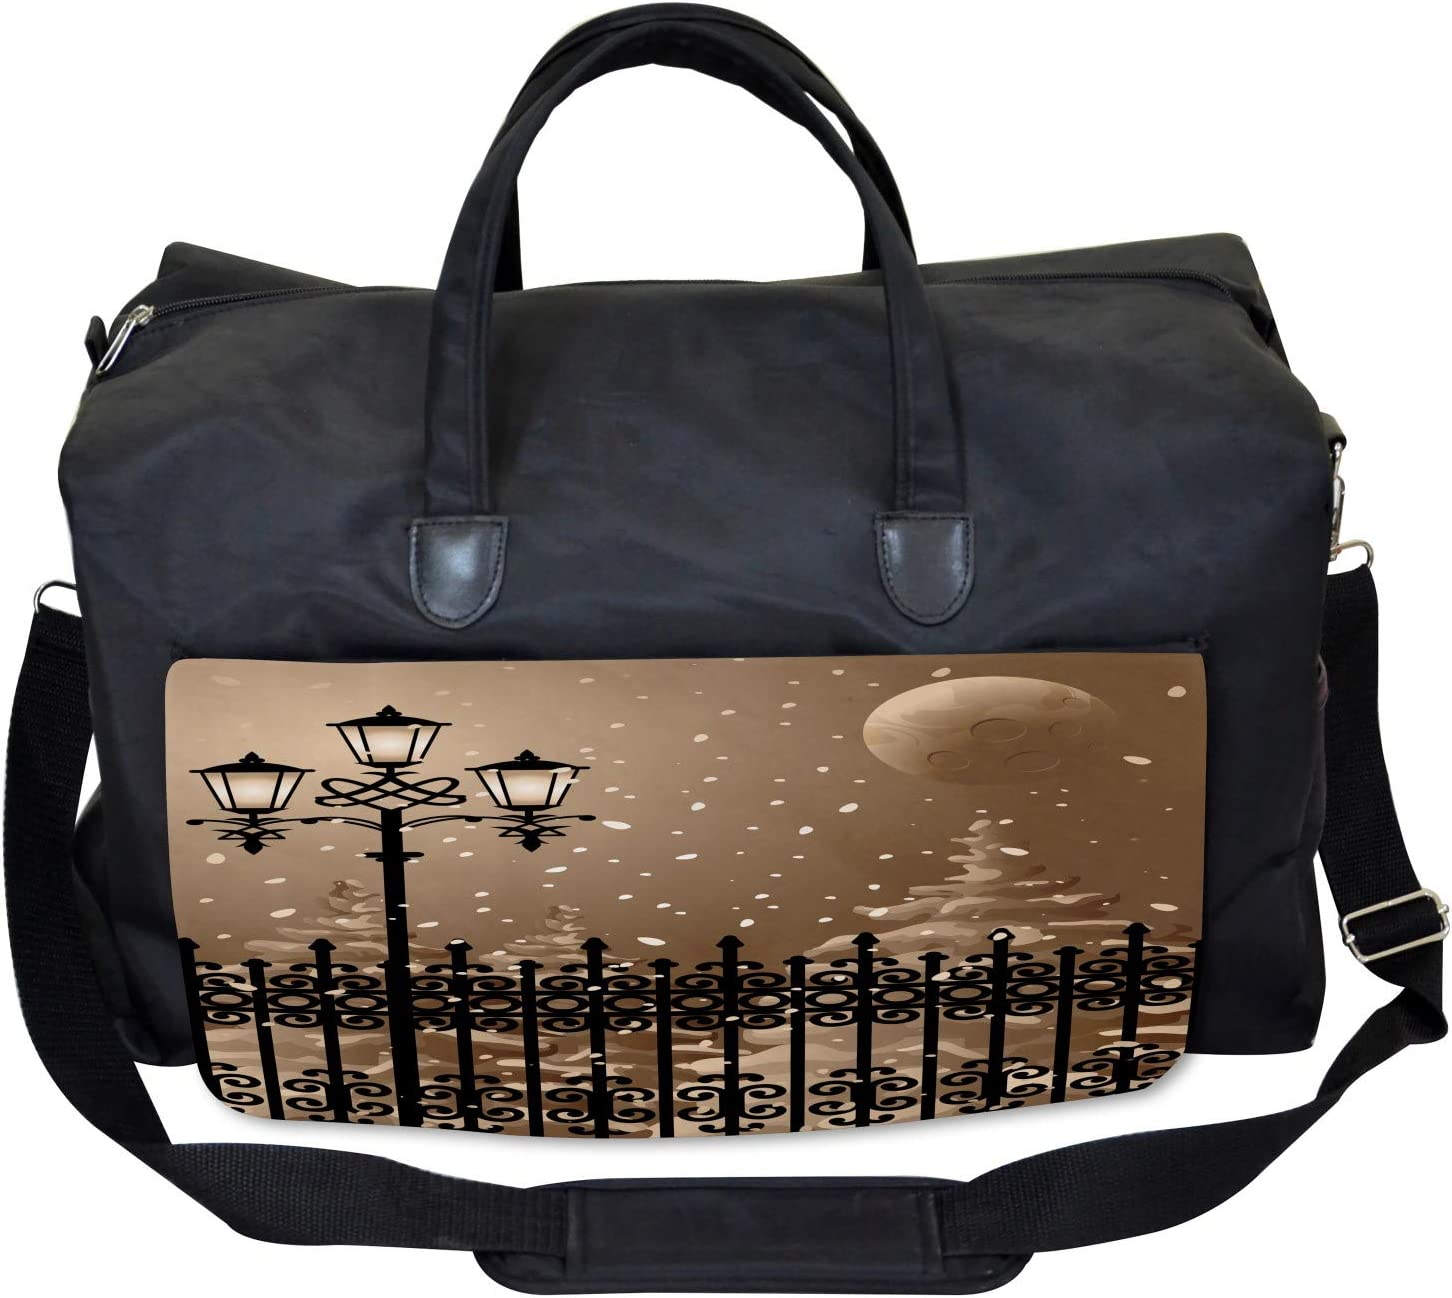 Snowy Moon Evening Large Weekender Carry-on Ambesonne Winter Gym Bag